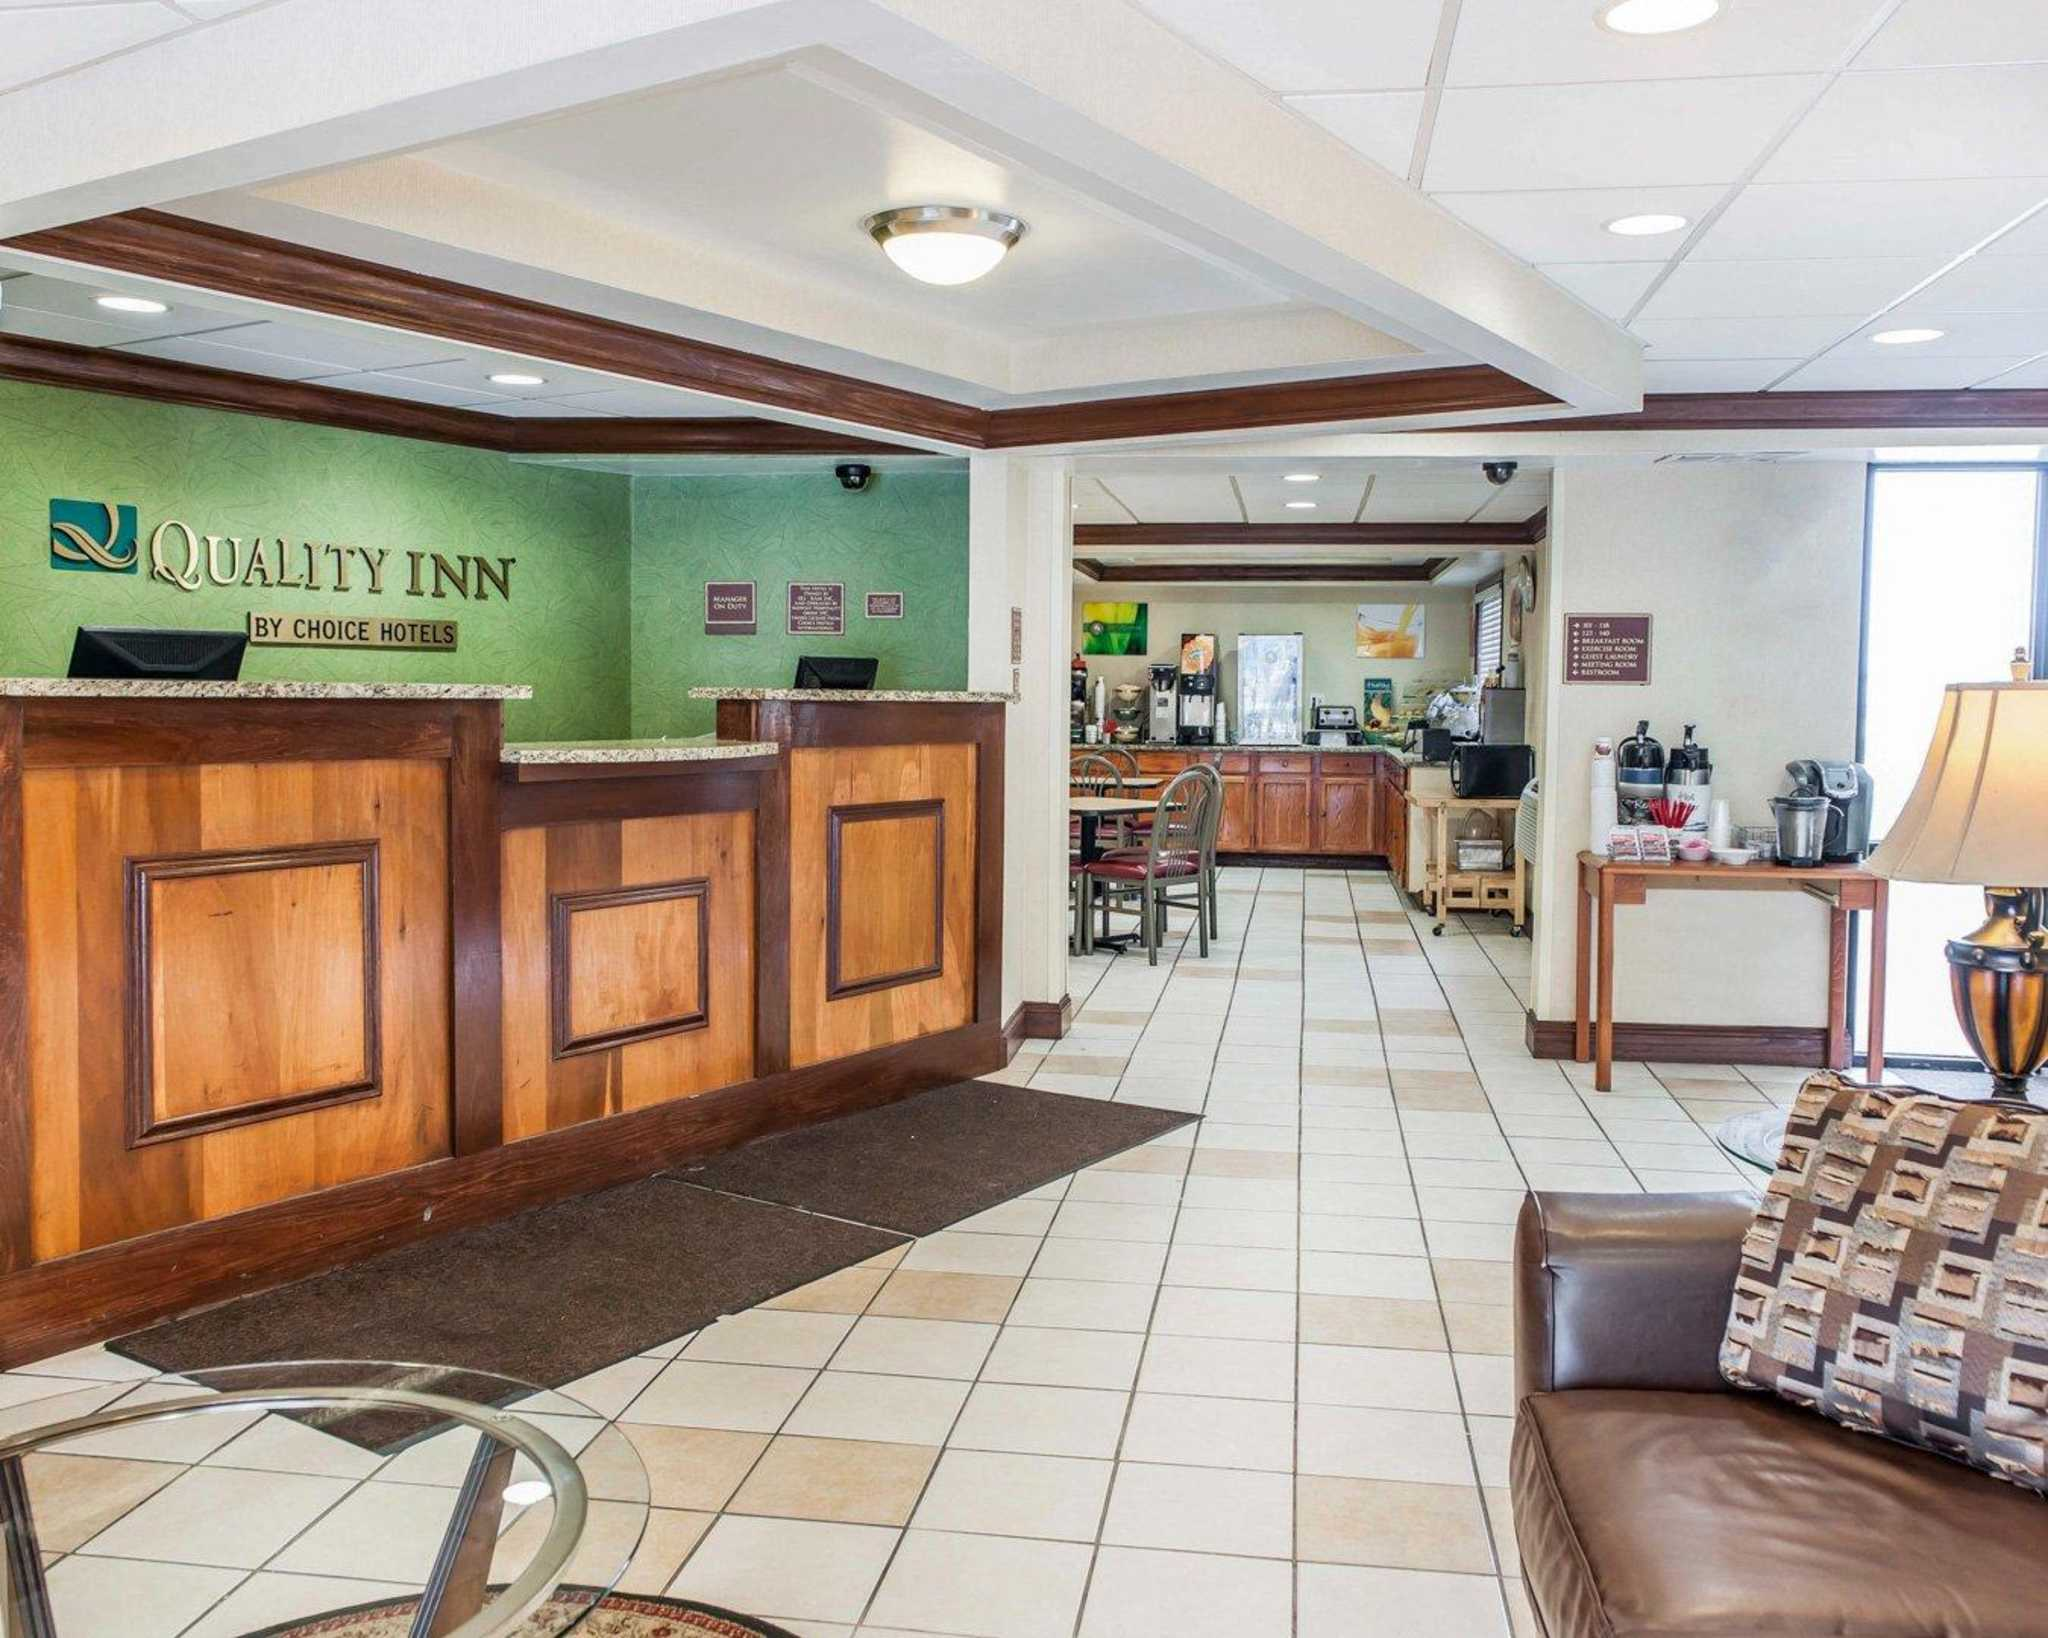 23 - Quality Inn South, Indianapolis, Standard Room, 2 Queen Beds, Non Smoking, Guest Room 24 - Quality Inn South, Indianapolis, Standard Room, 1 King Bed, Non Smoking, Guest Room 25 - Quality Inn South, Indianapolis, Breakfast Area/5().